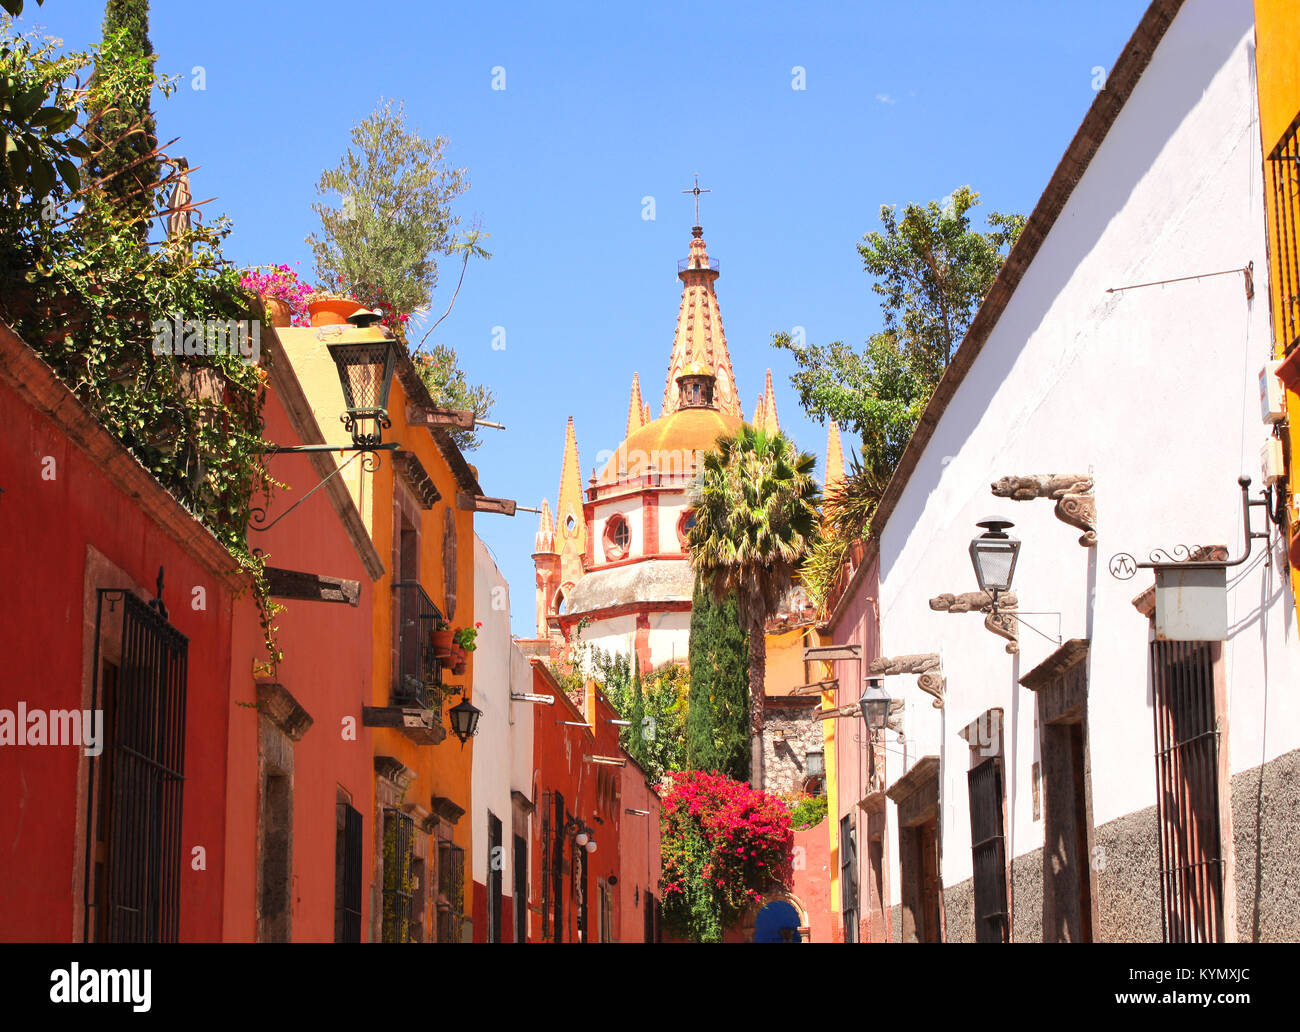 Archangel church Dome Steeple. View from Aldama Street Parroquia, San Miguel de Allende, Guanajuato state, Mexico, - Stock Image